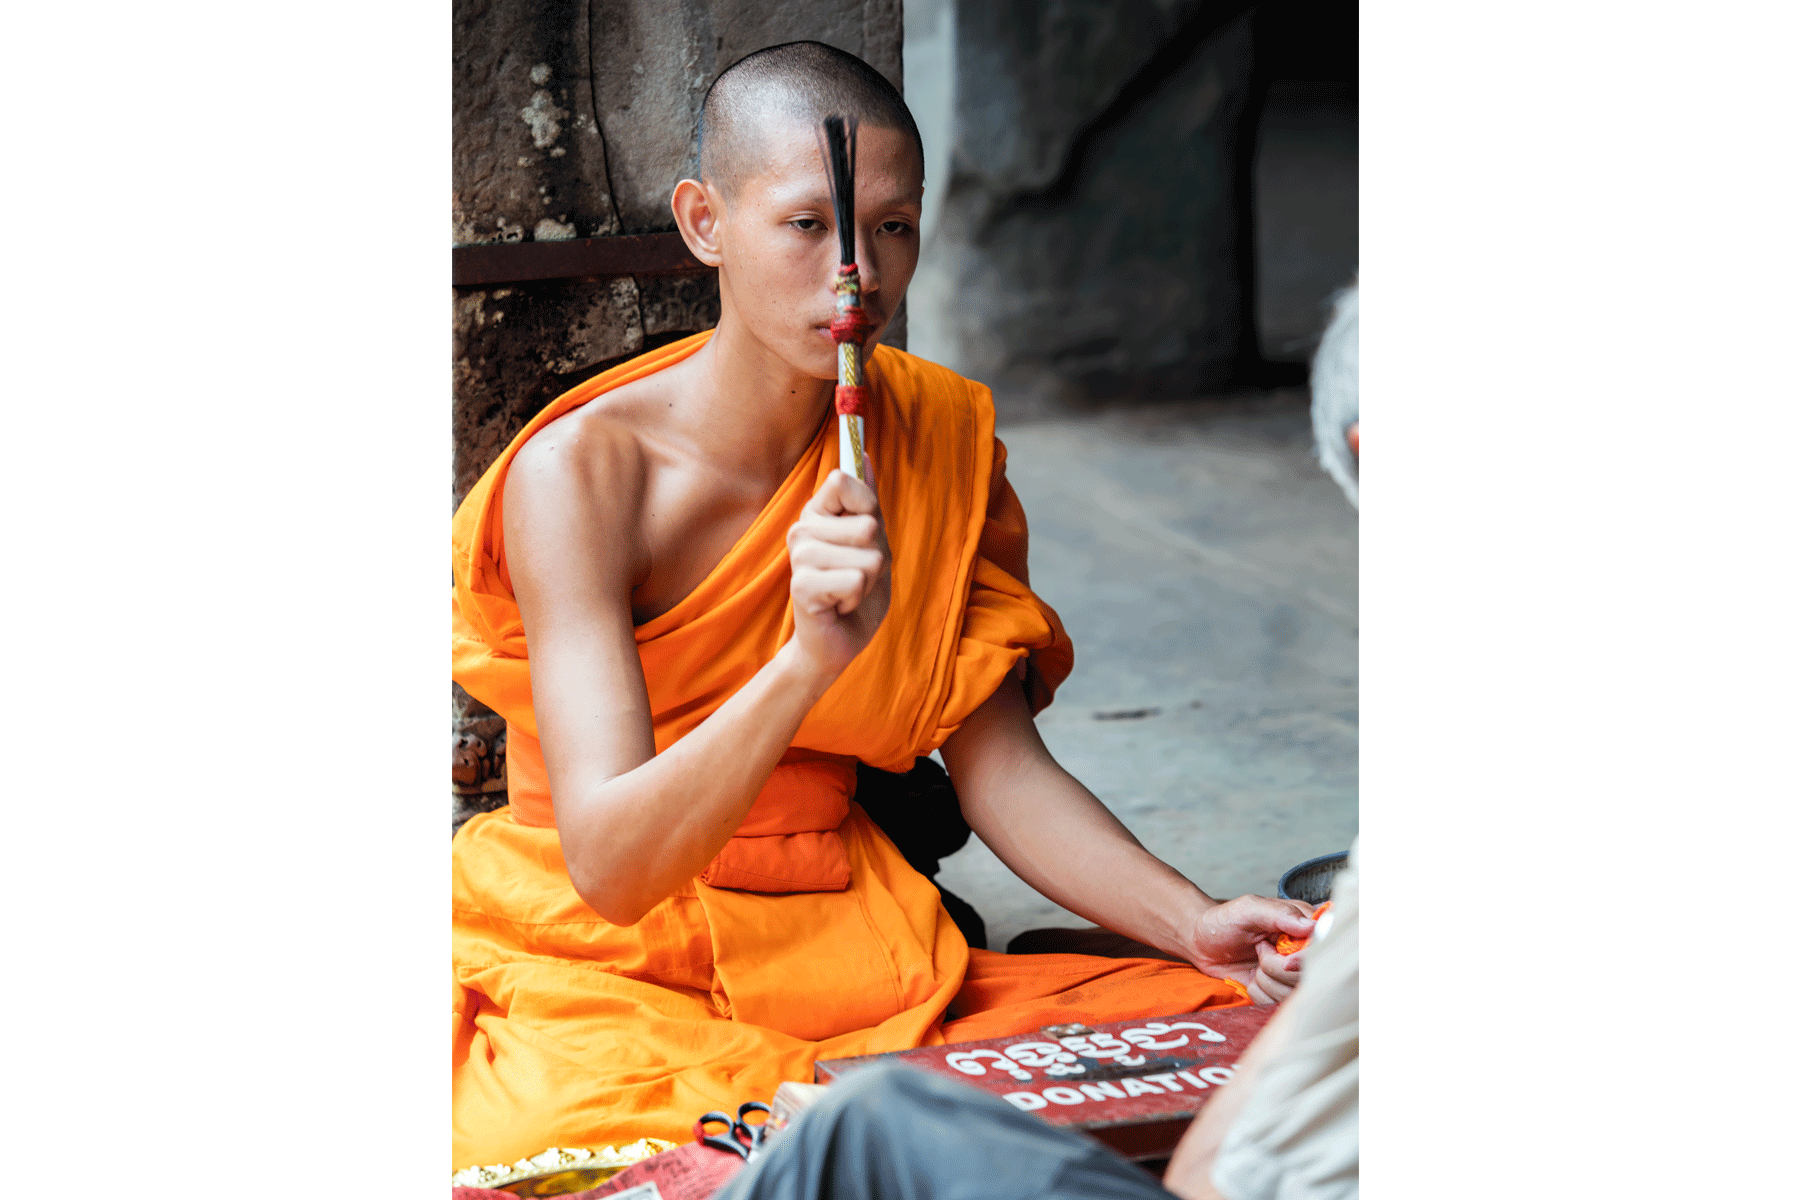 angkor-archeological-site-monk-ceremony